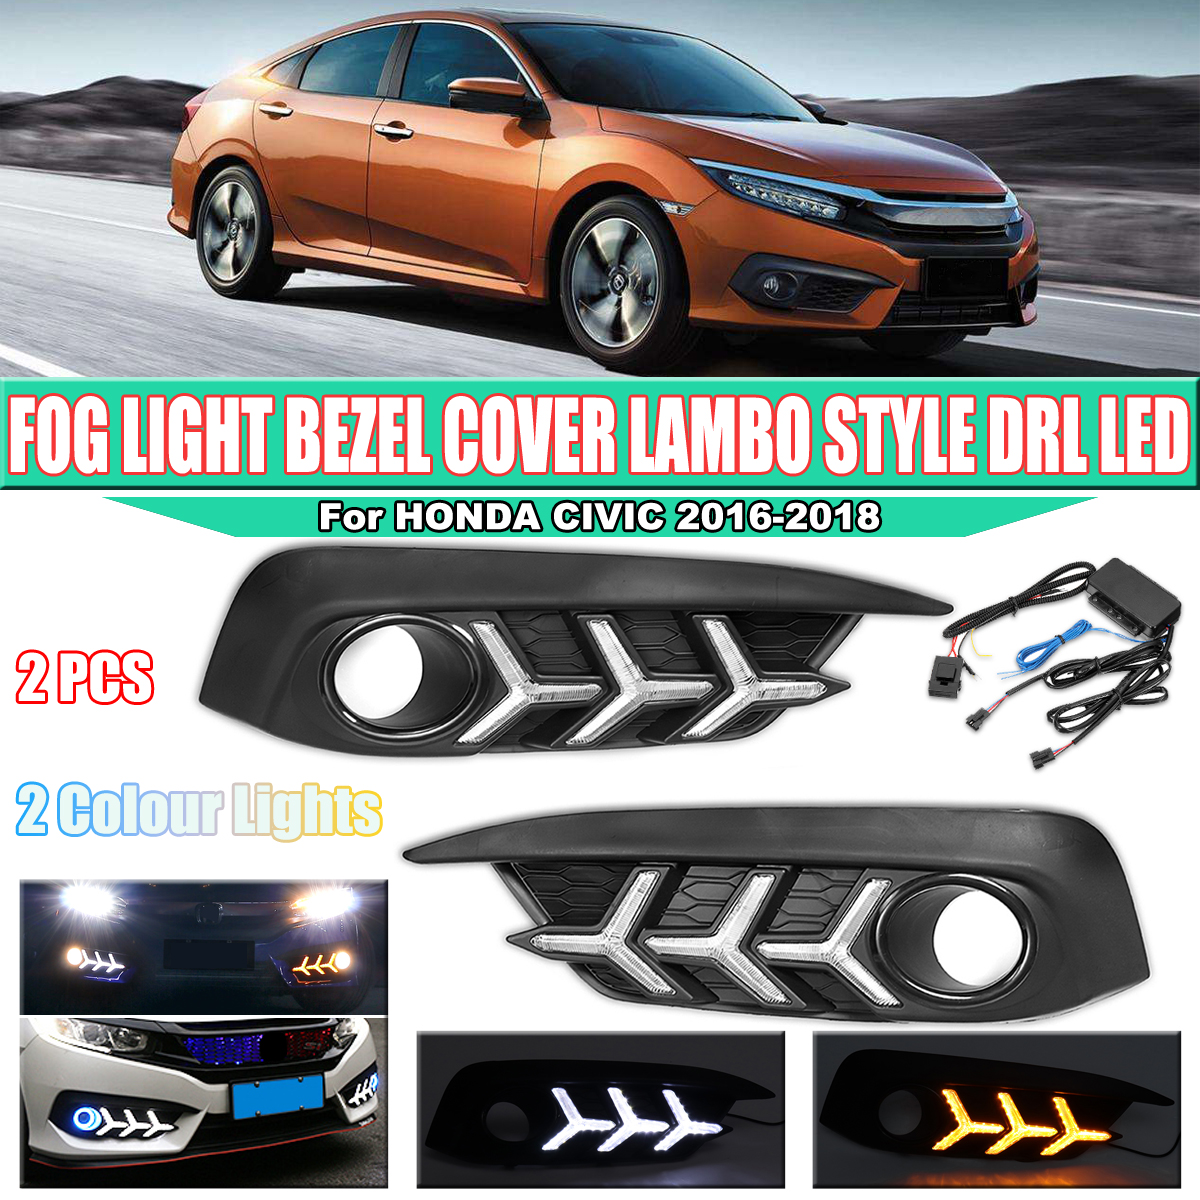 Pair Dual-color Car LED Daytime Running Lights Turn Signals Lamp for Honda Civic 2016 2017 2018